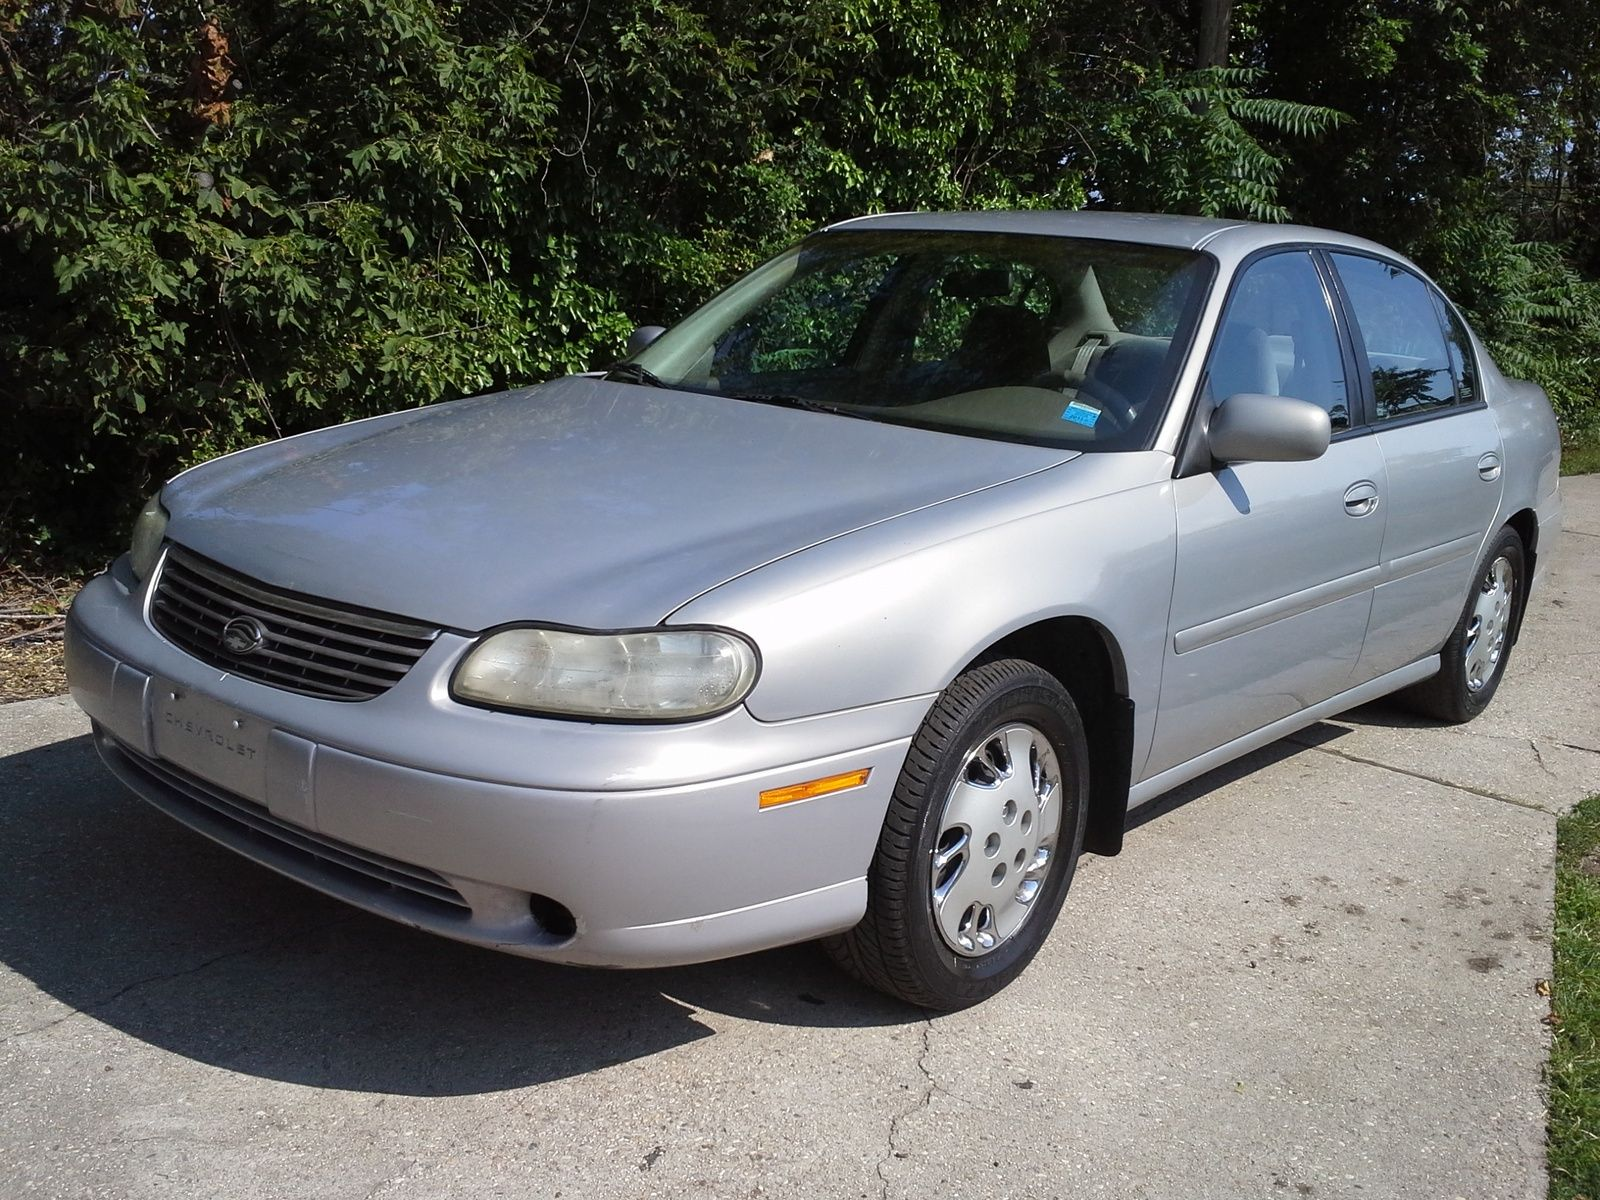 1998 chevrolet malibu ls specs colors 0 60 0 100 quarter mile drag and top speed review mycarspecs united states usa 1998 chevrolet malibu ls specs colors